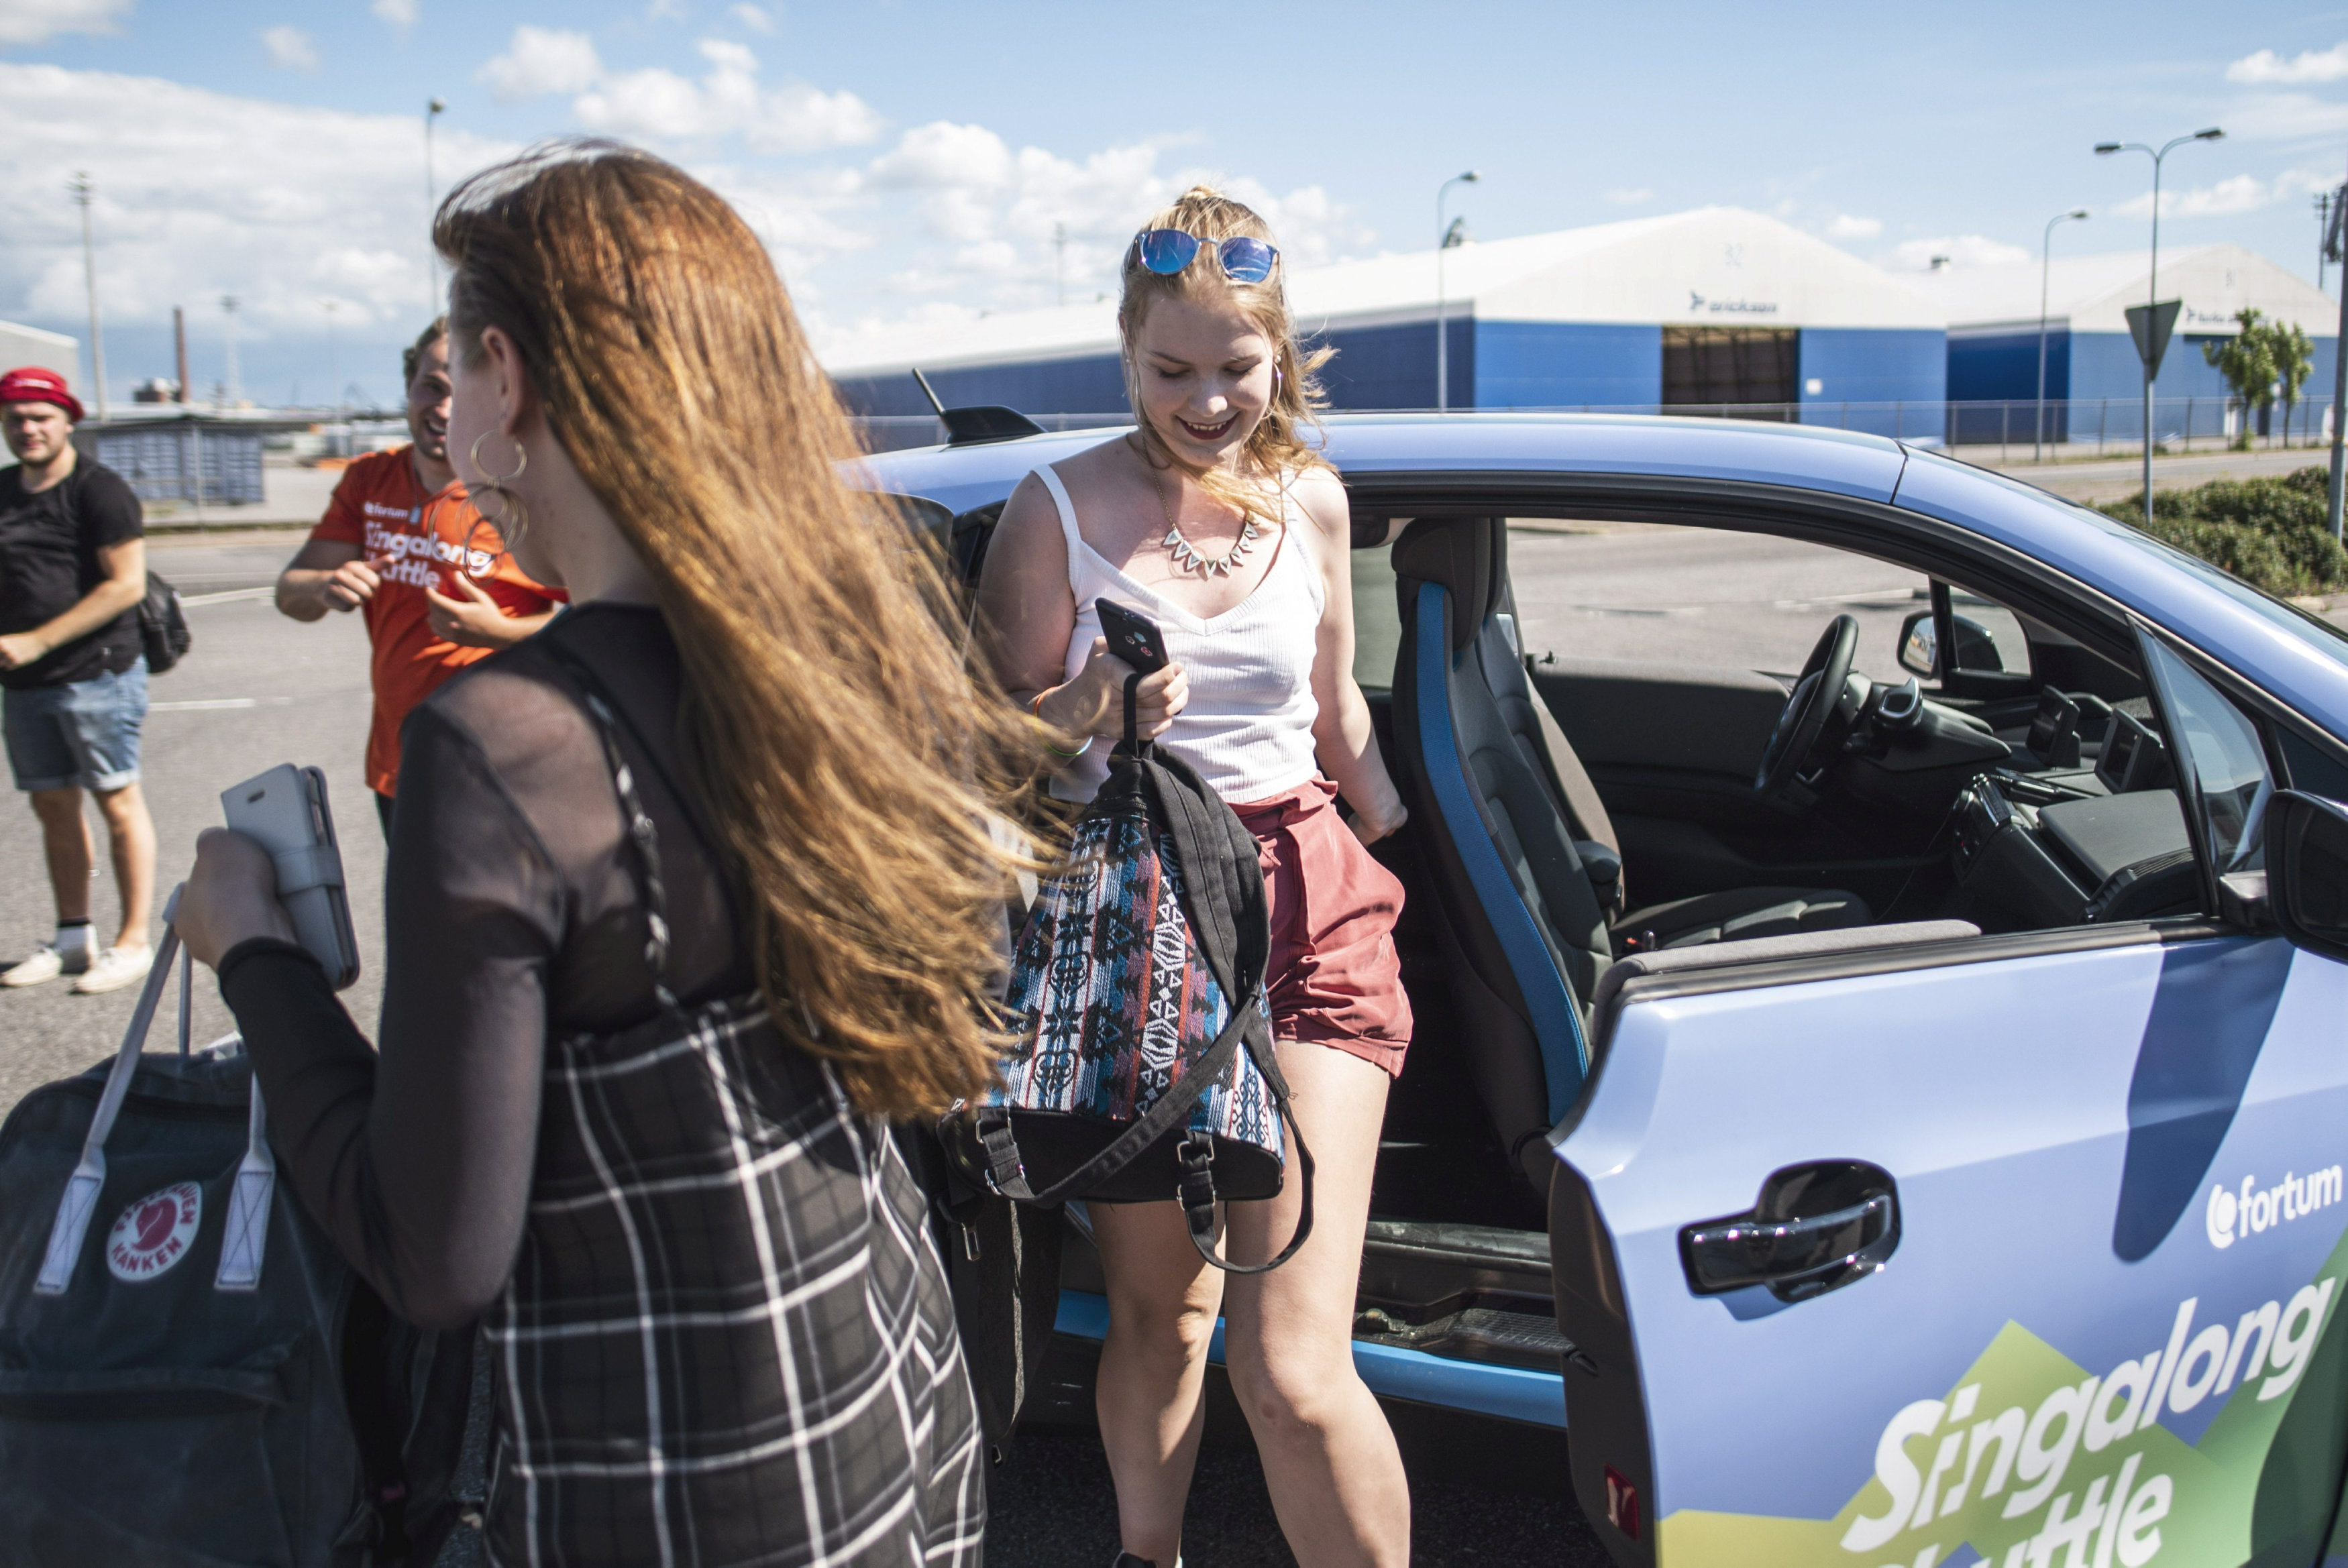 Natalie Pekonen and Salli Degerman get out of the 'Singalong Shuttle Cab' after arriving to Ruisrock festival area in Turku